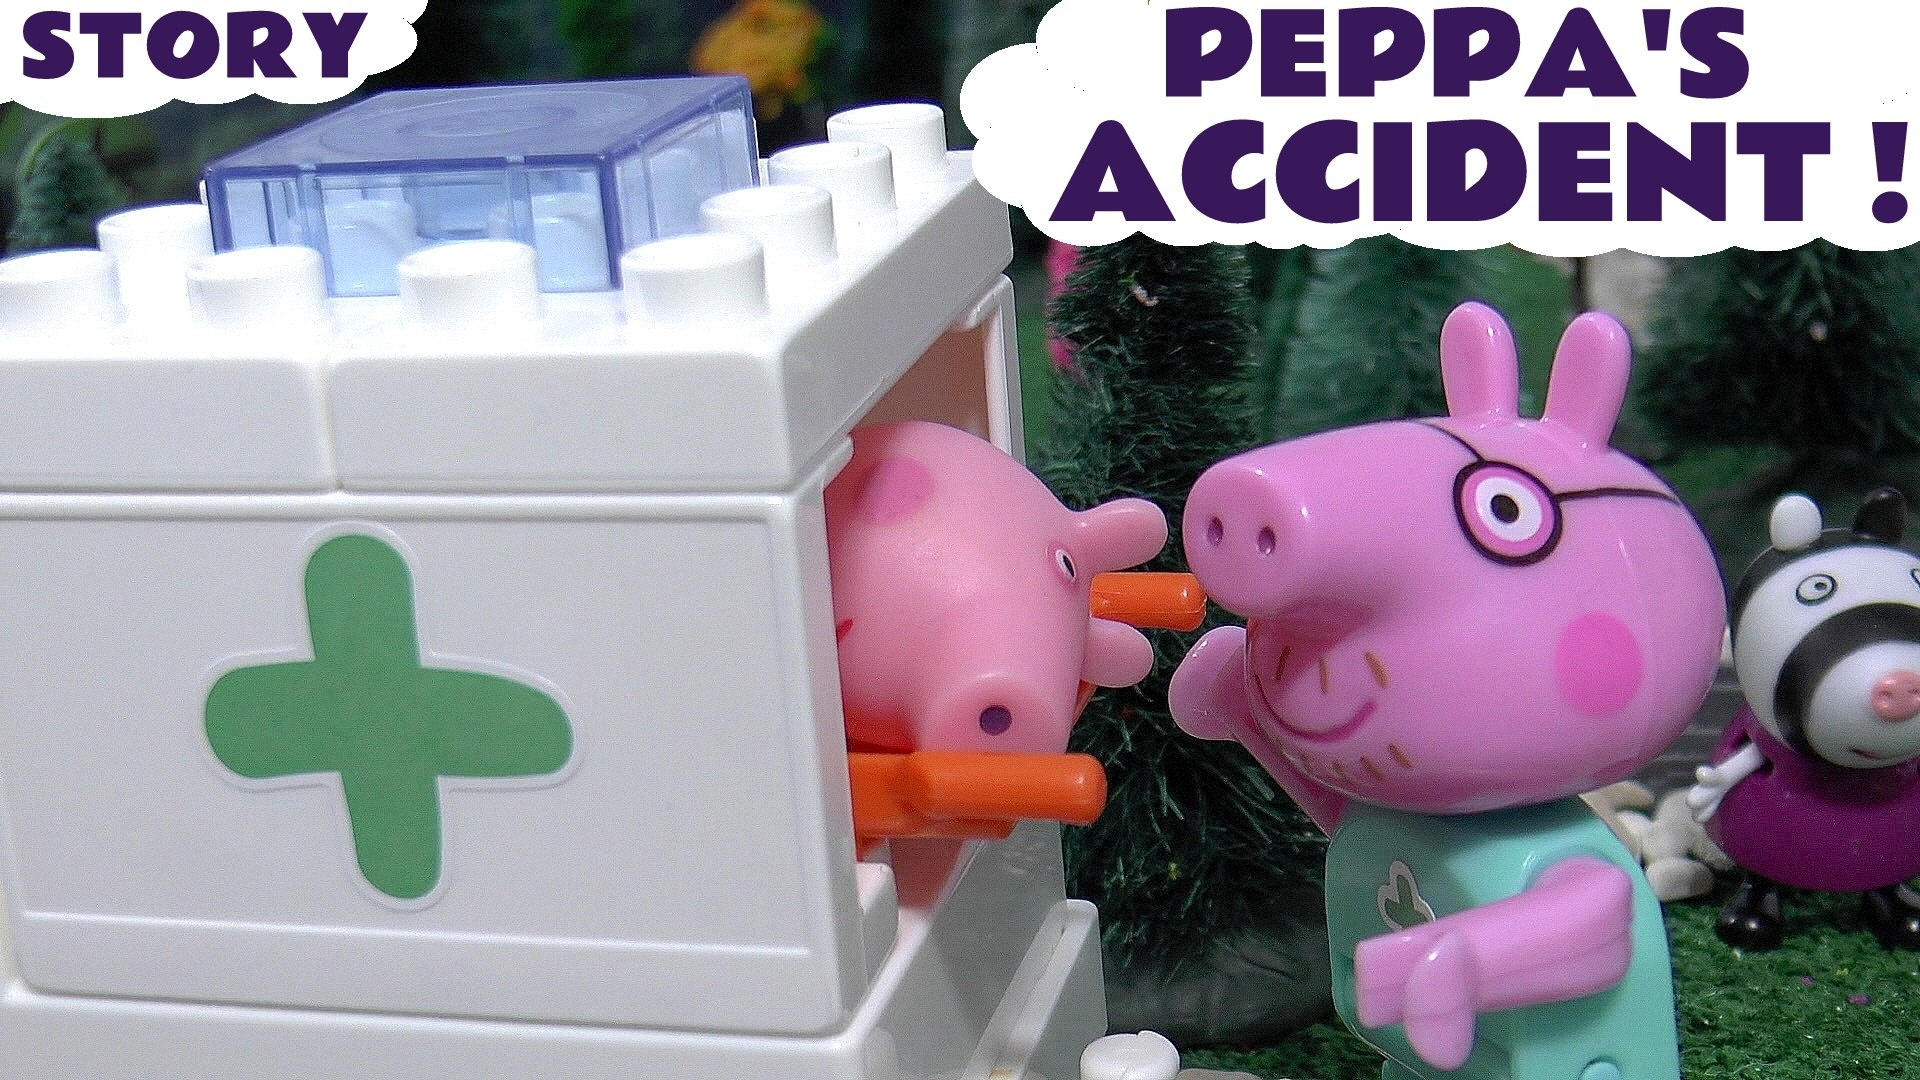 PEPPA'S ACCIDENT --- Peppa Pig goes to Hospital after an Accident! This toy story is a Hospital